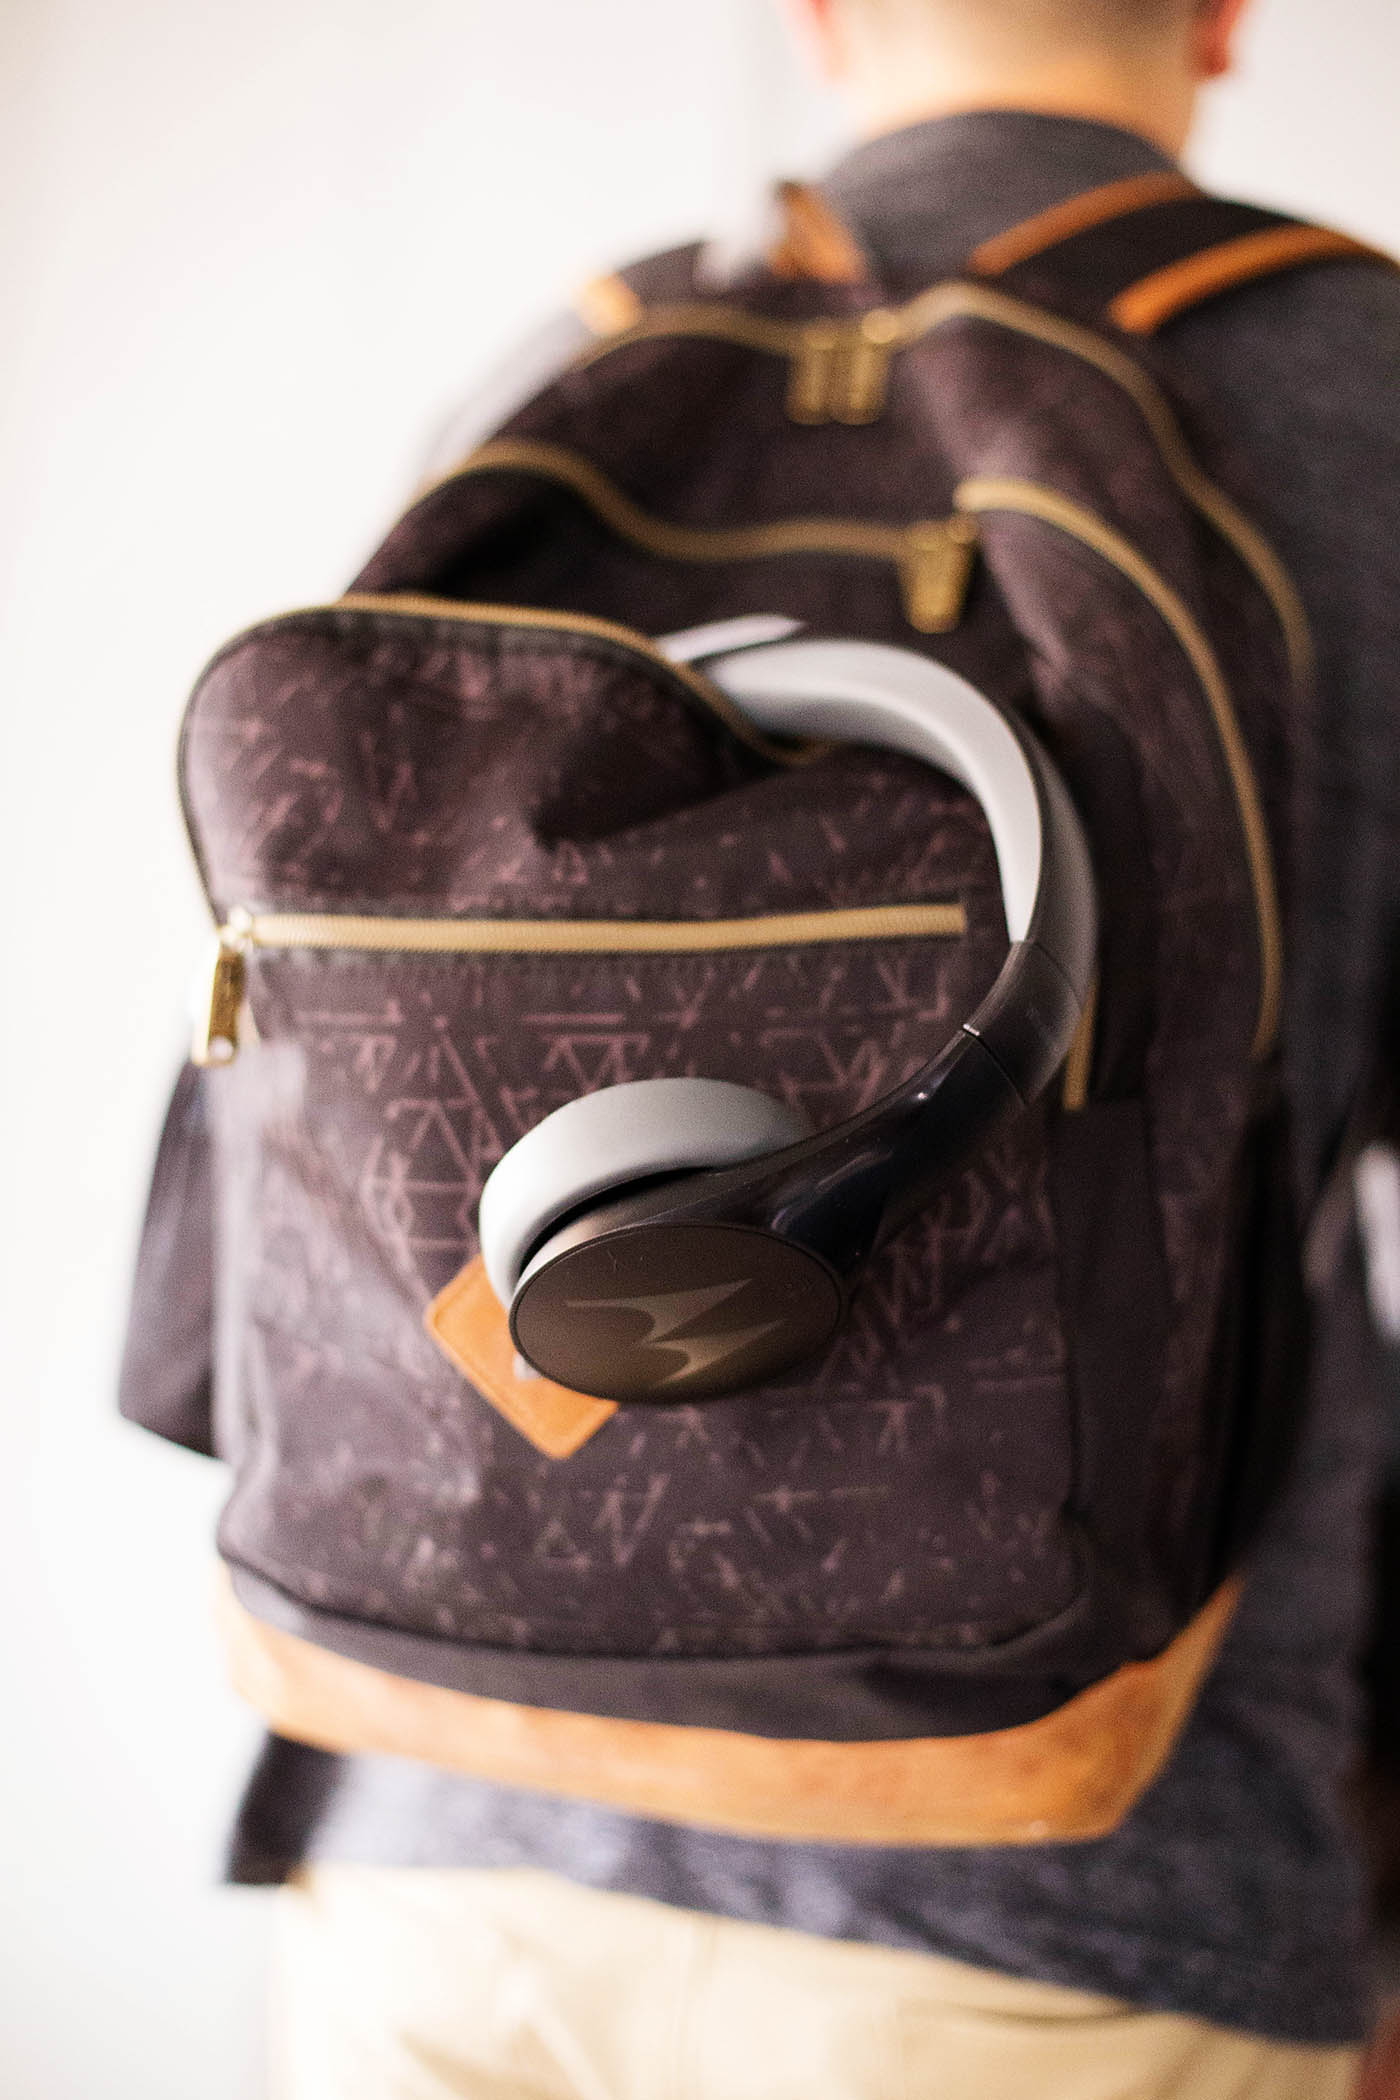 Gift idea: Motorola Pulse Escape Headphones - an inexpensive gift for anyone on your list